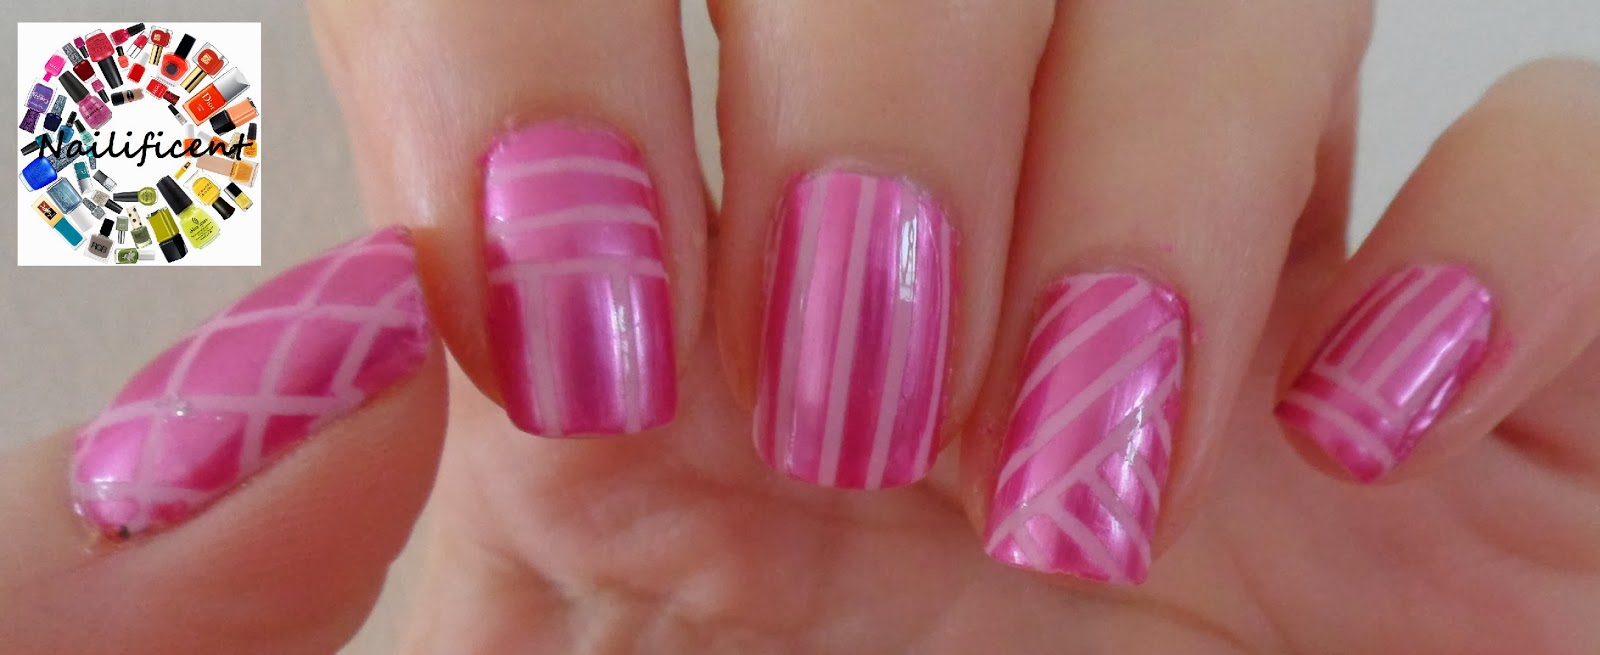 Nailificent: Stand Up To Cancer and wear pink nails